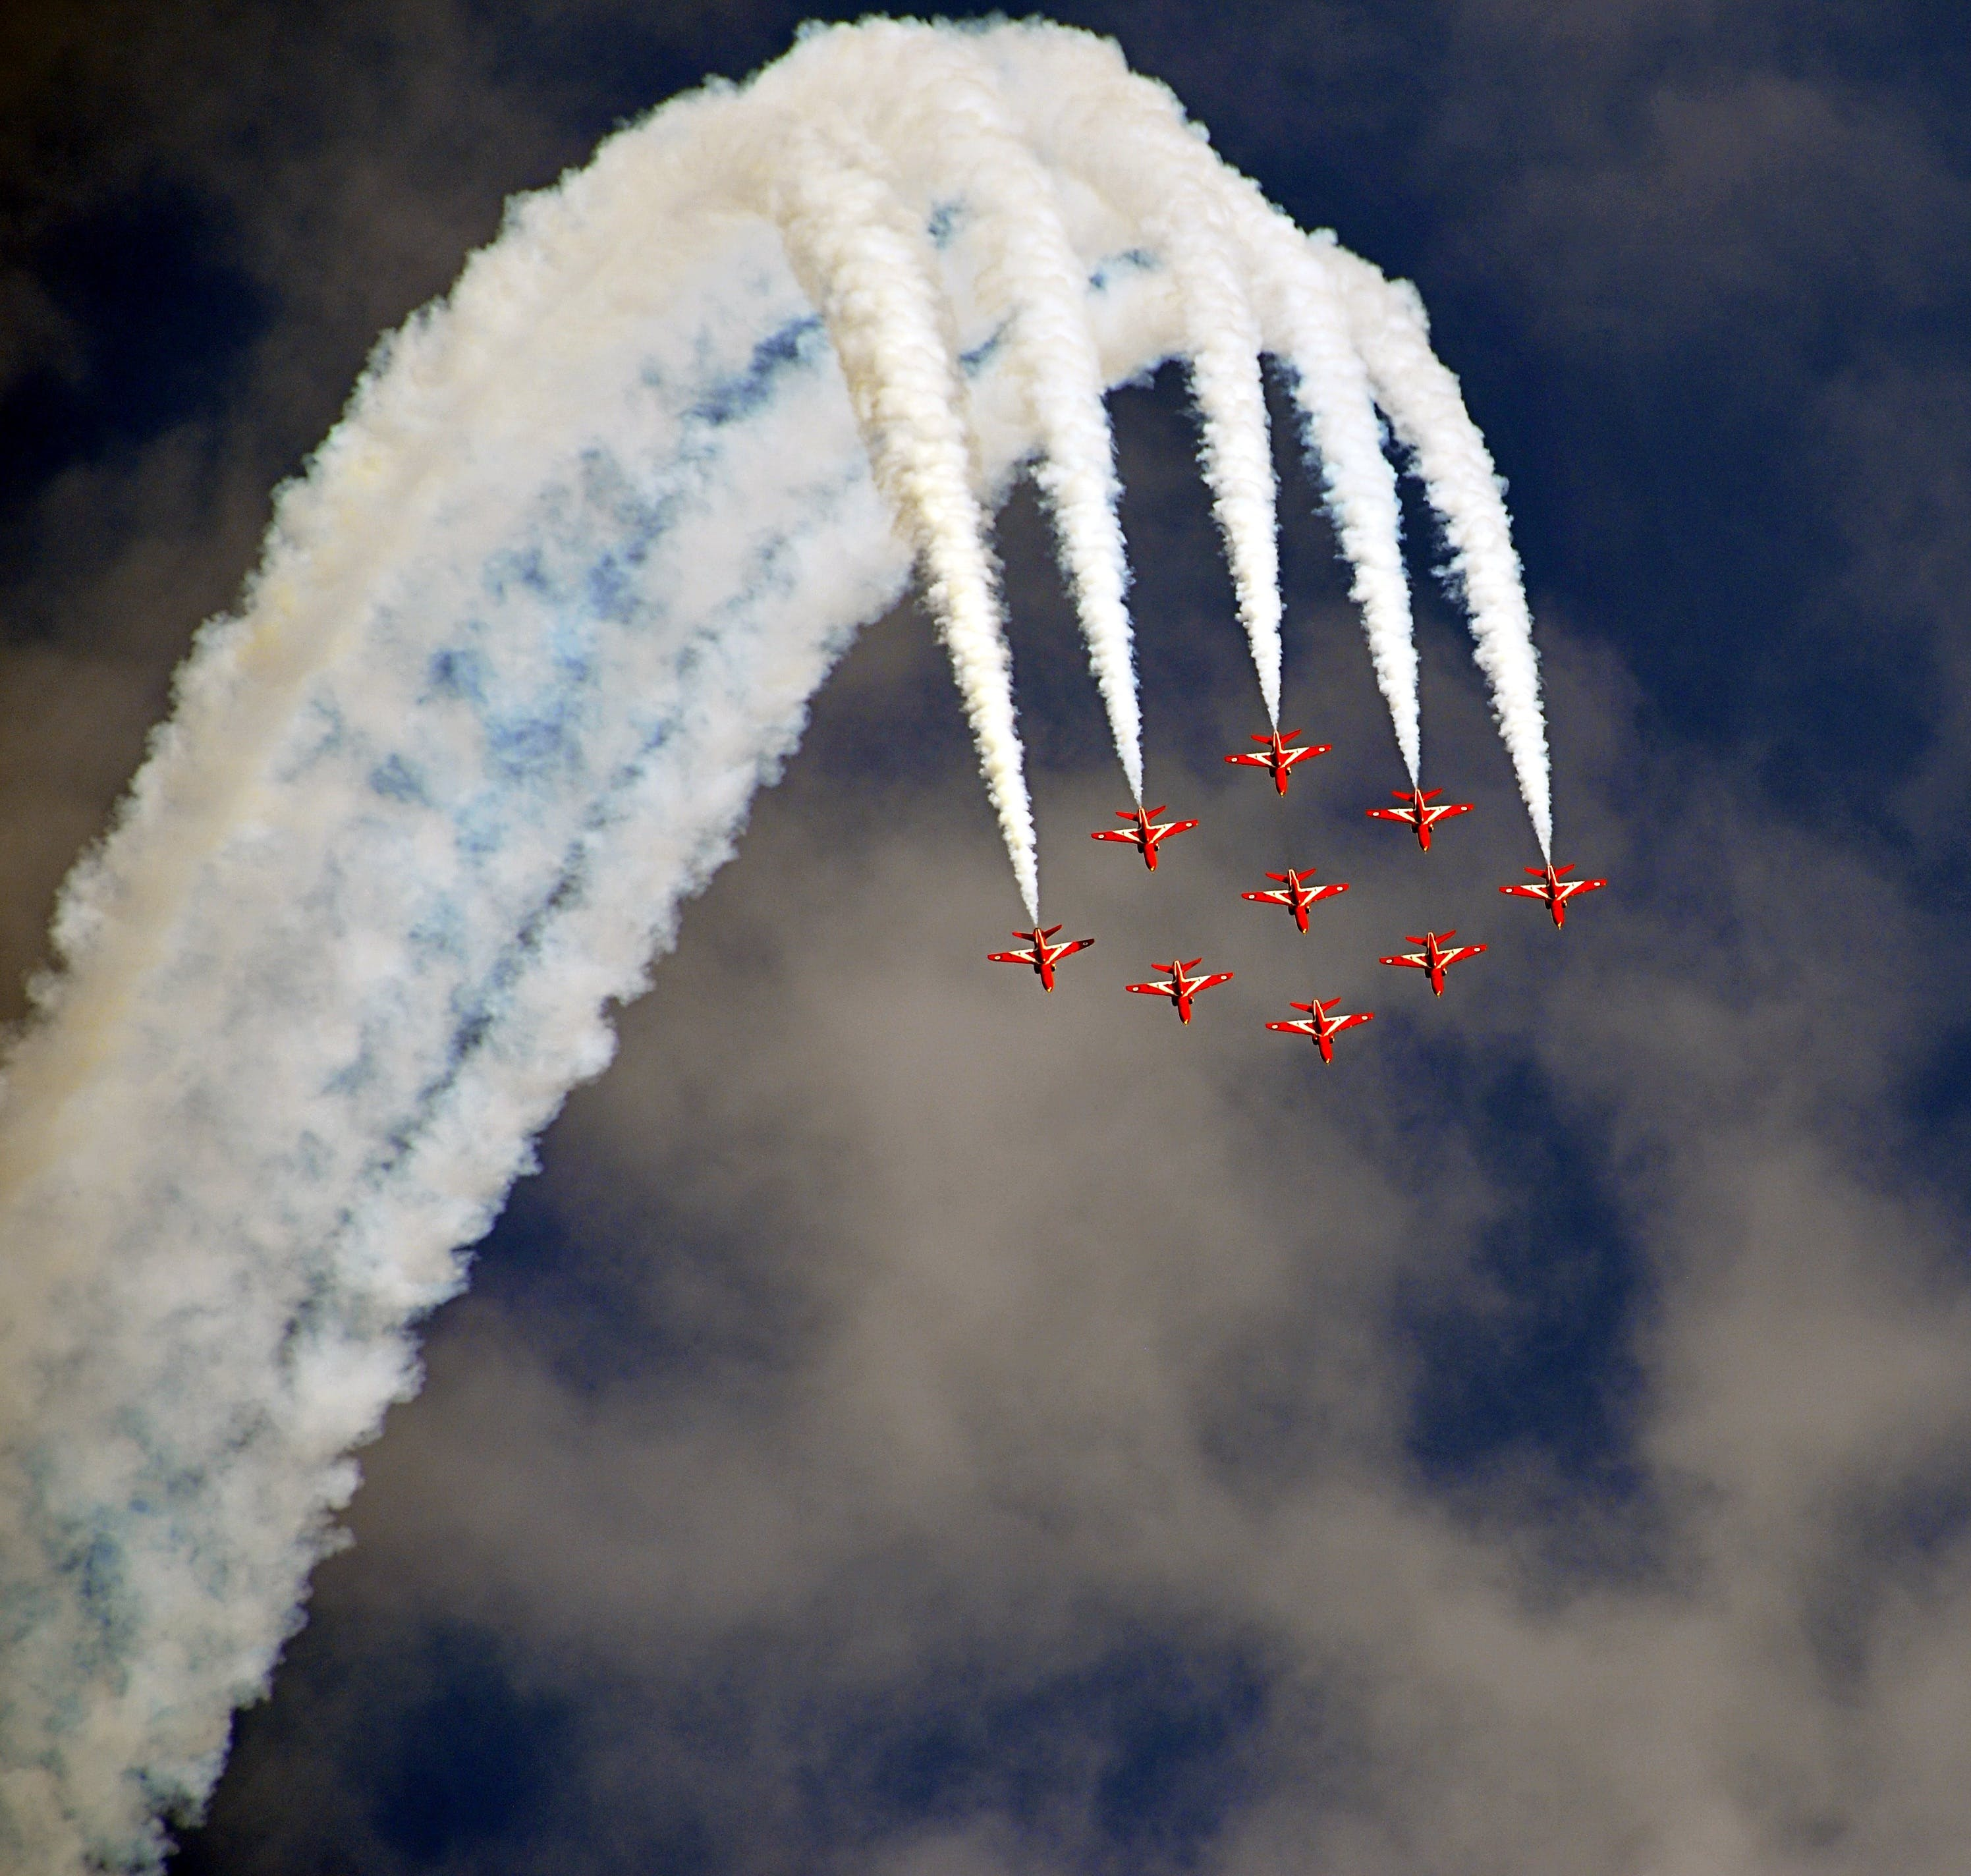 Red Acrobat Planes Flying During Daytime